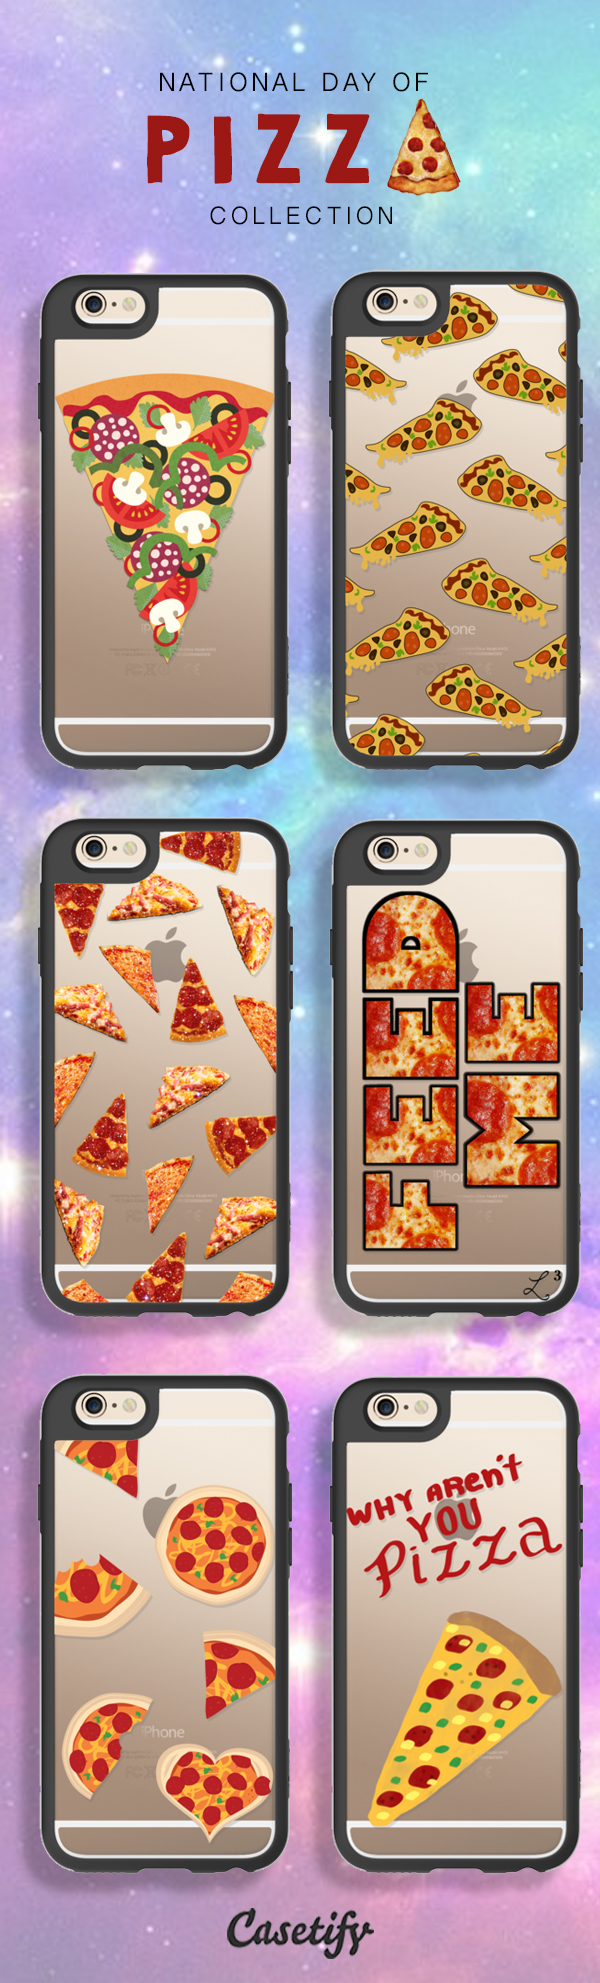 Because #NationalPizzaDay is just around the corner. https://www.casetify.com/artworks/gC53OLfI4E